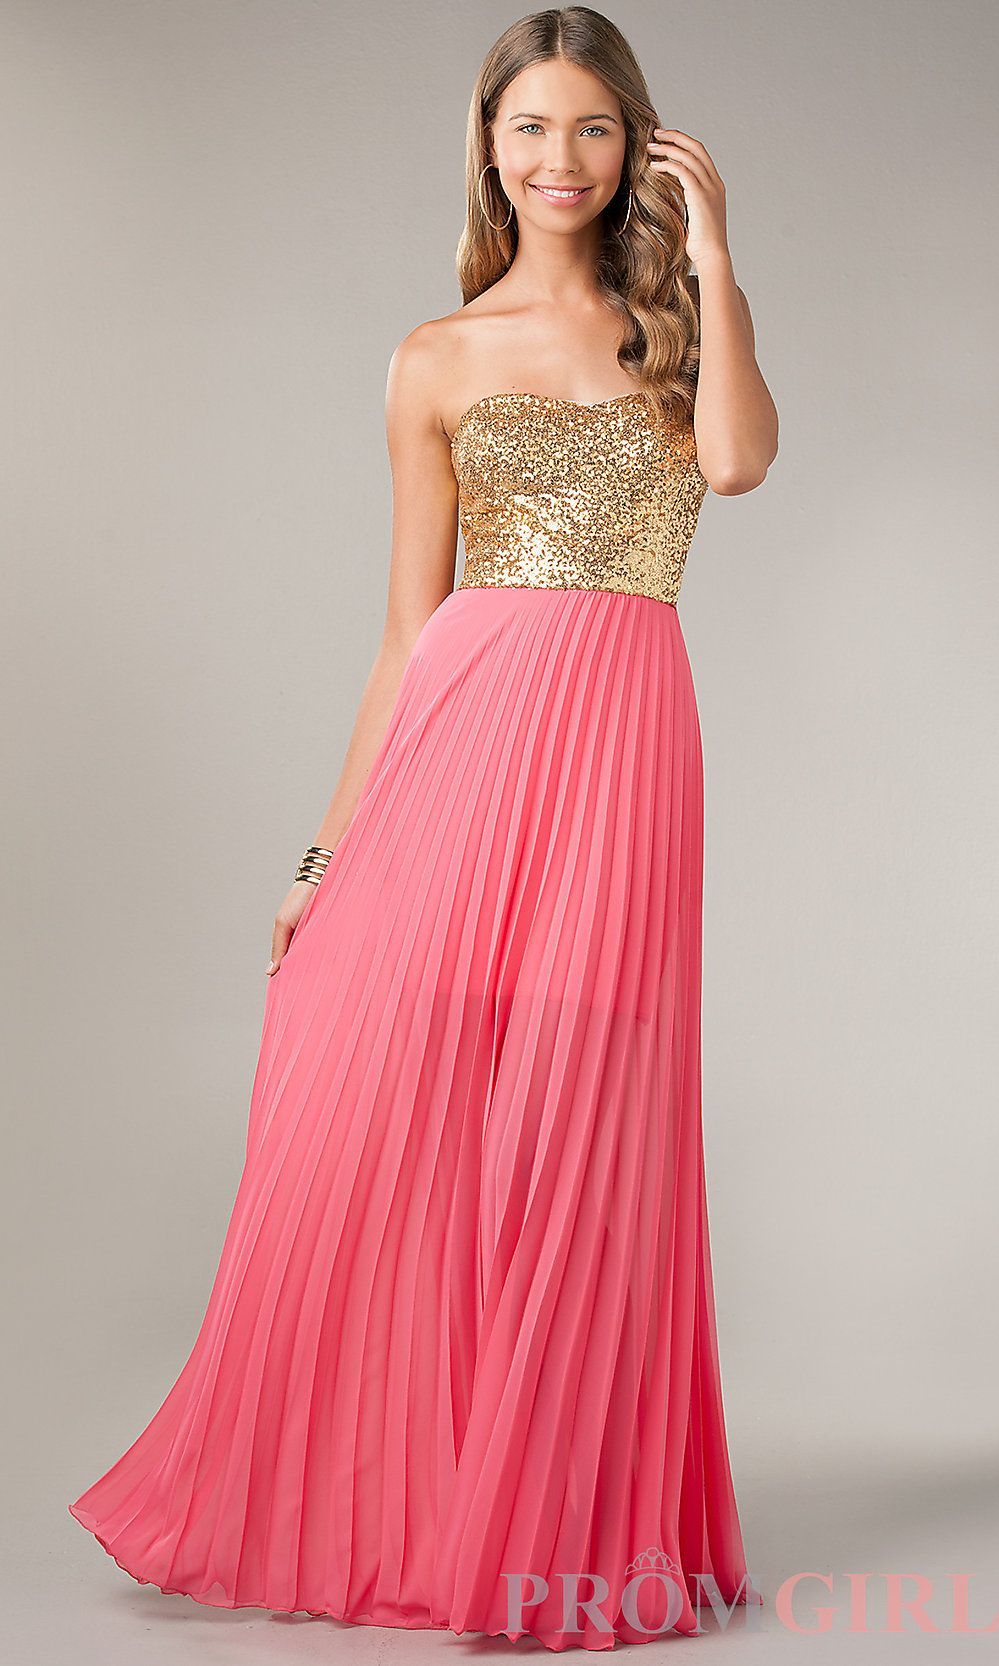 Prom Dresses, Celebrity Dresses, Sexy Evening Gowns at PromGirl ...